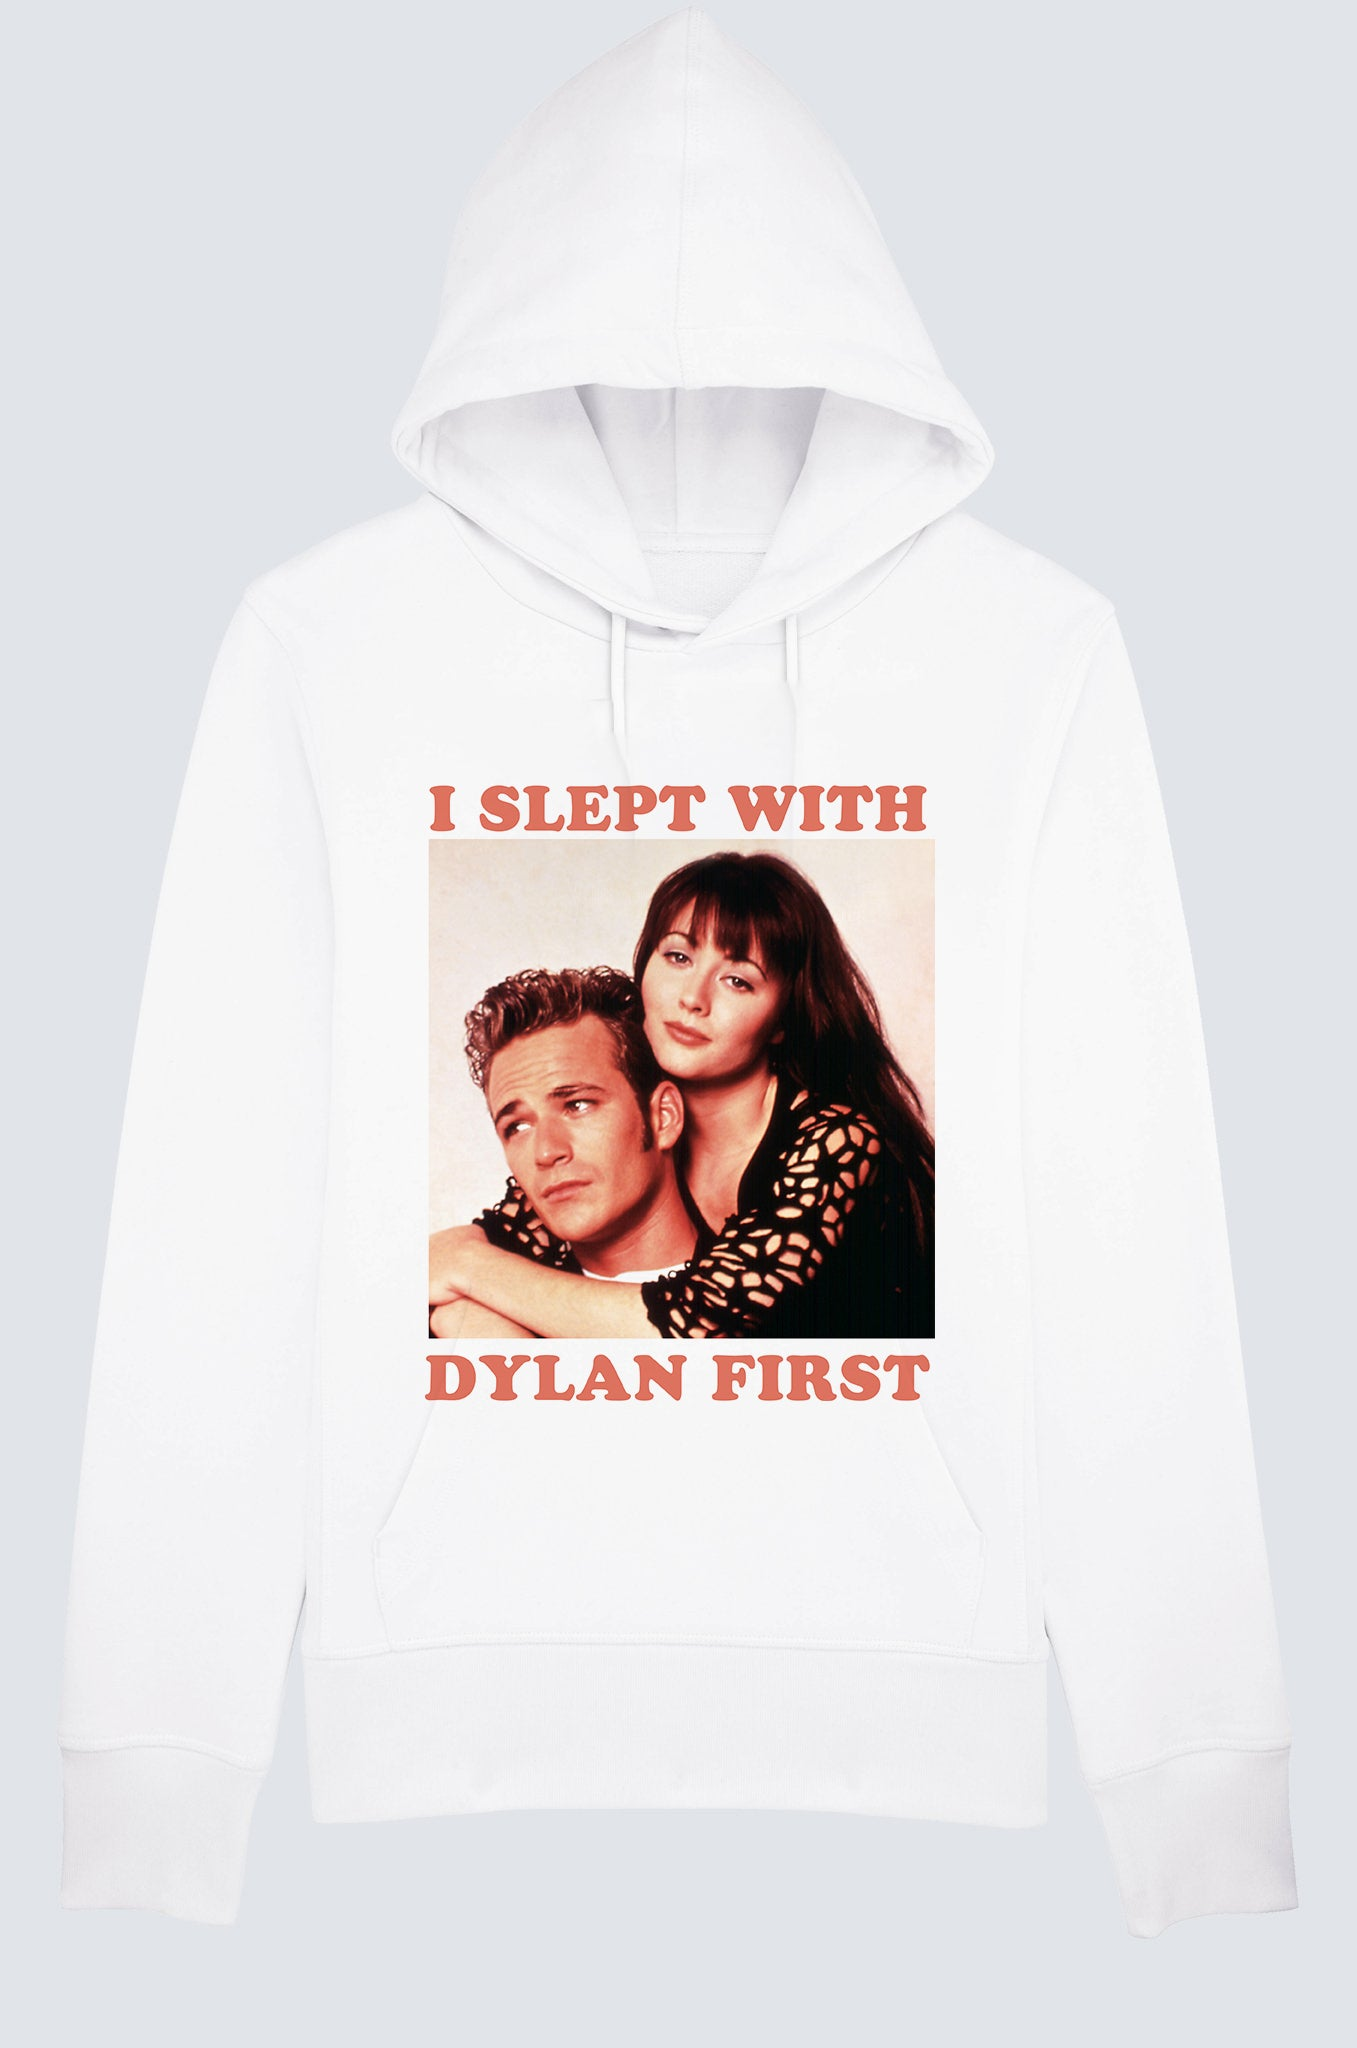 I slept with Dylan First